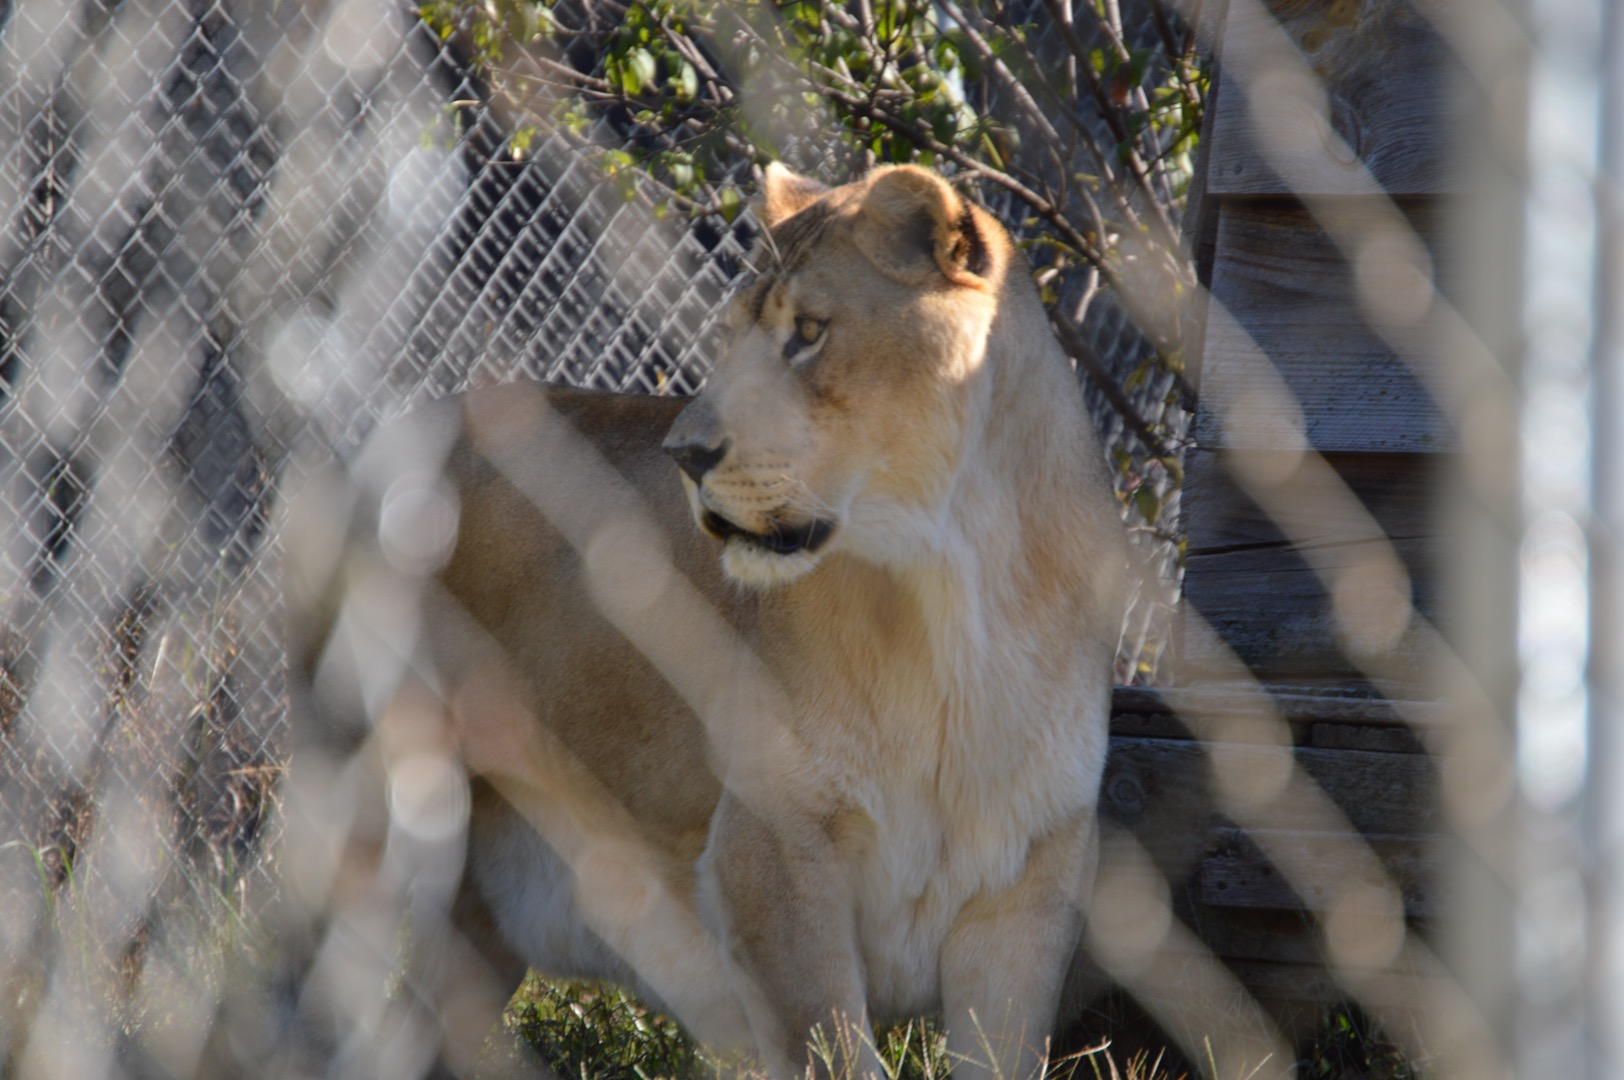 <div class='meta'><div class='origin-logo' data-origin='WTVD'></div><span class='caption-text' data-credit='Angelica Alvarez'>Fifty-five animals call Carolina Tiger Rescue home. There are about 10 species including tigers, lions, and leopards.</span></div>